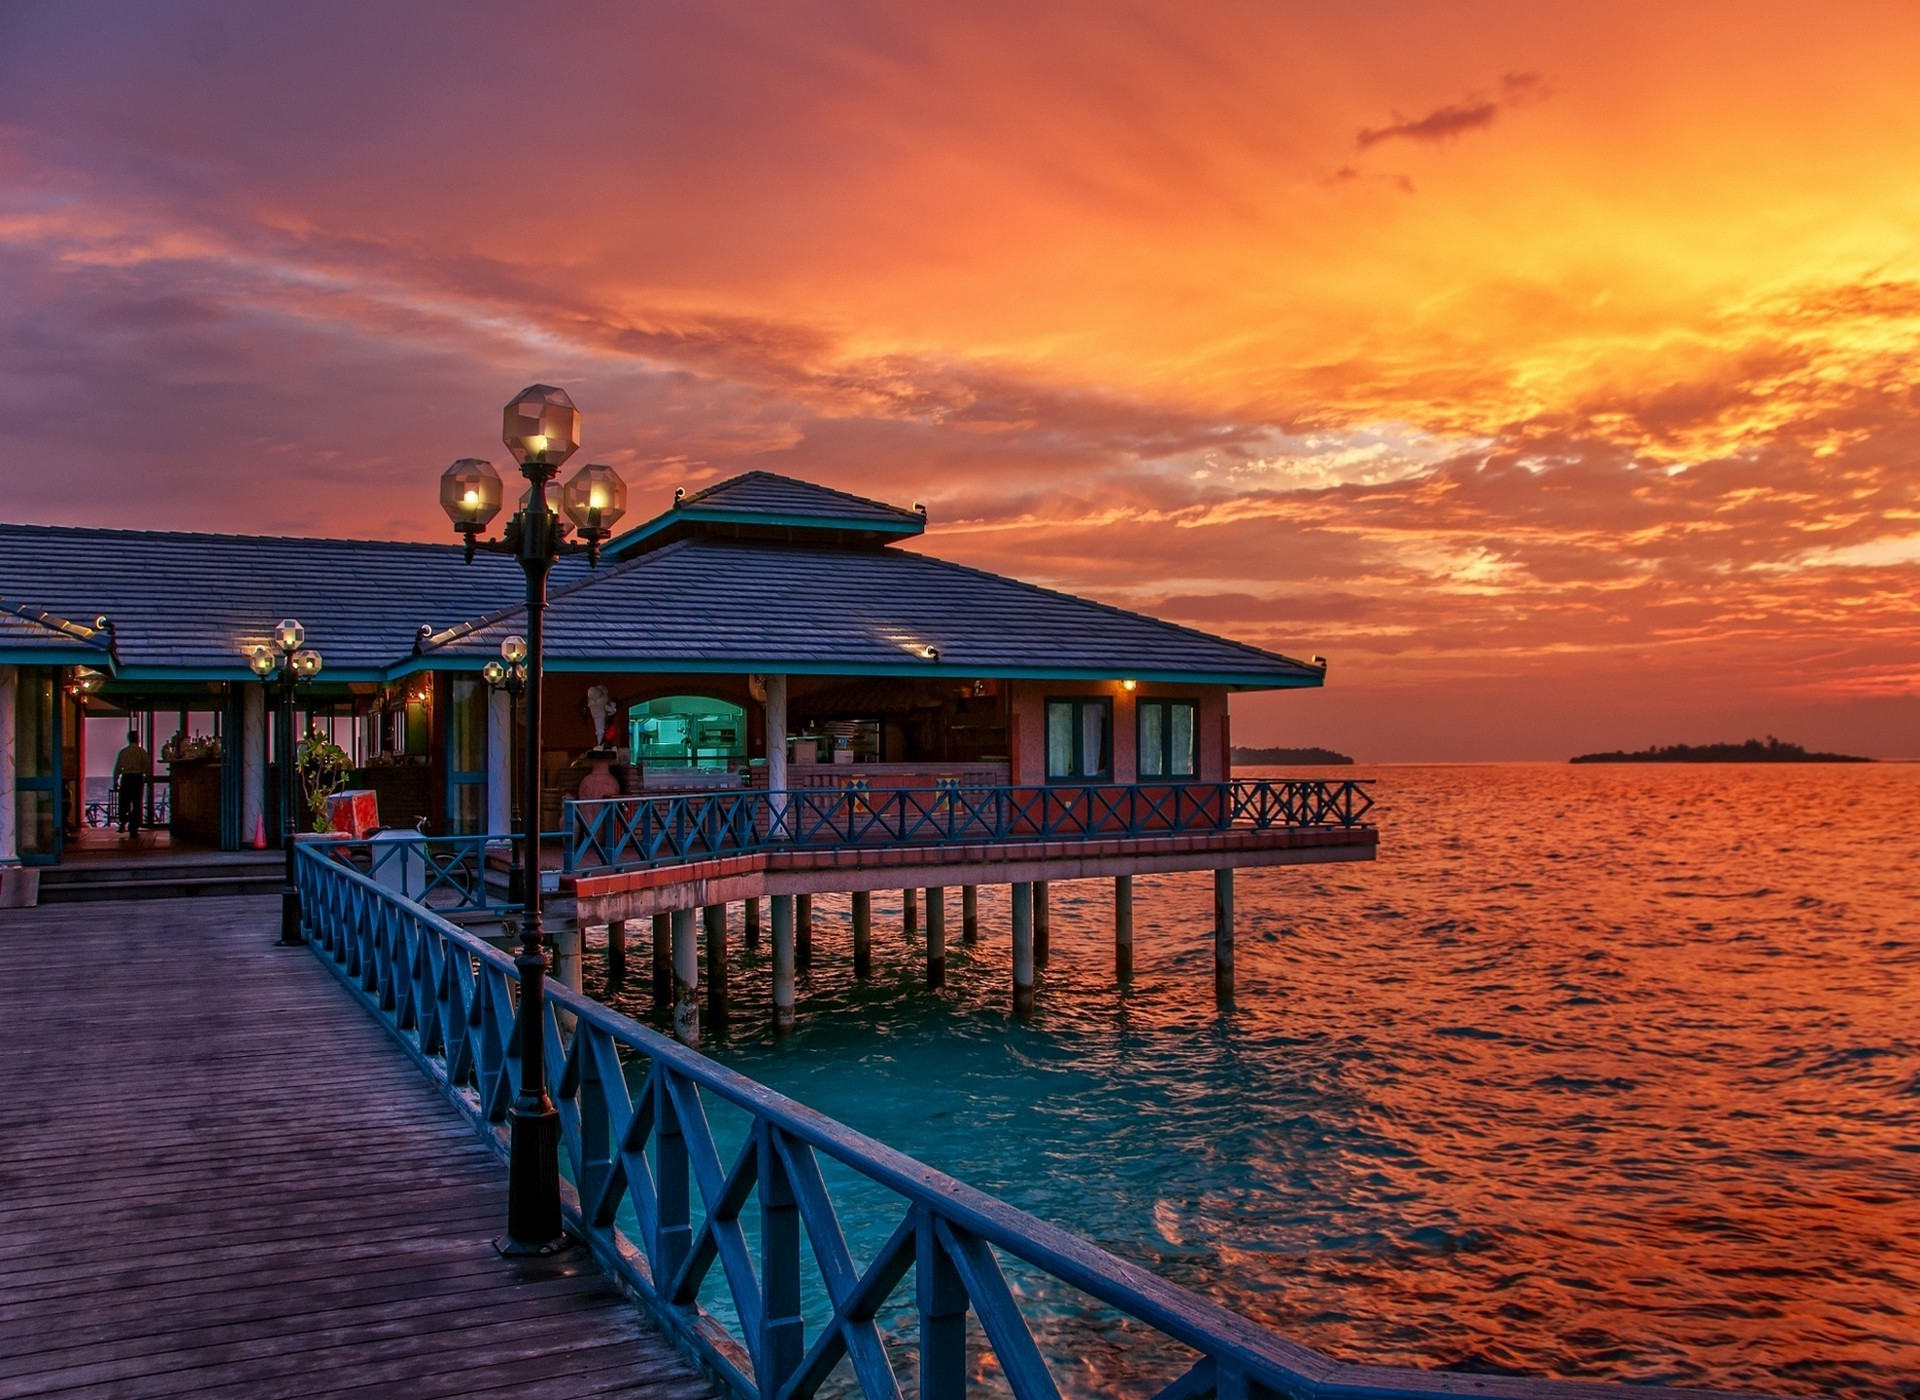 Hd Movie Wallpapers For Mobile Maldives Restaurant Sunset Sea Tropical Sky Walkway